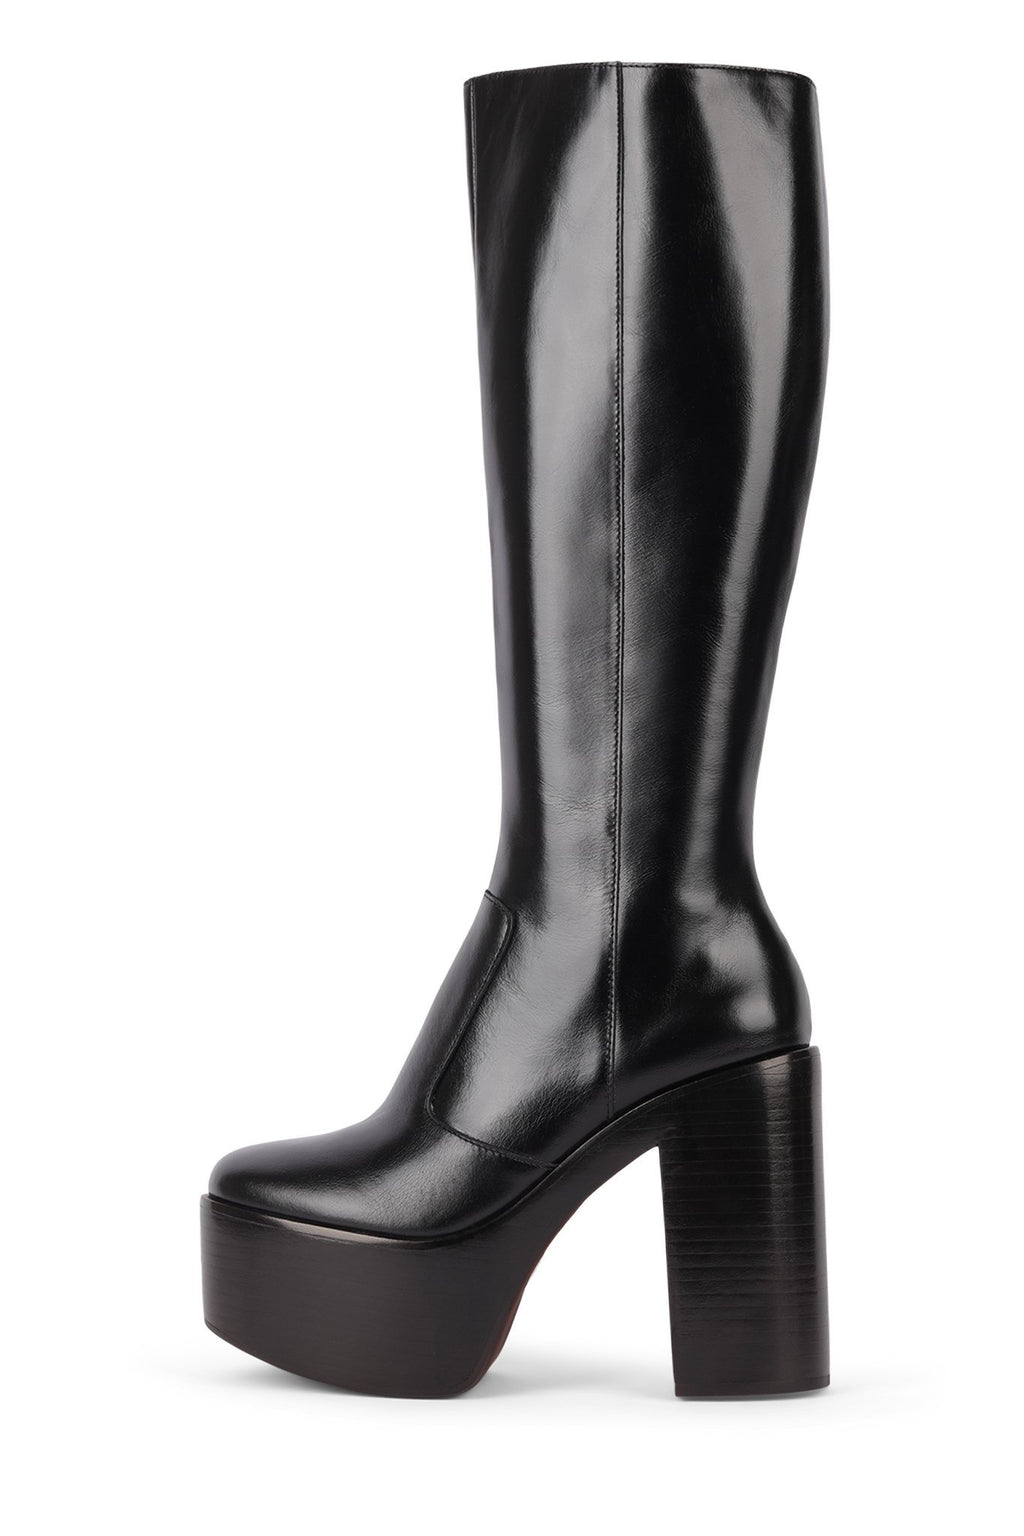 MEXIQUE-KH Knee-High Boot YYH Black 6